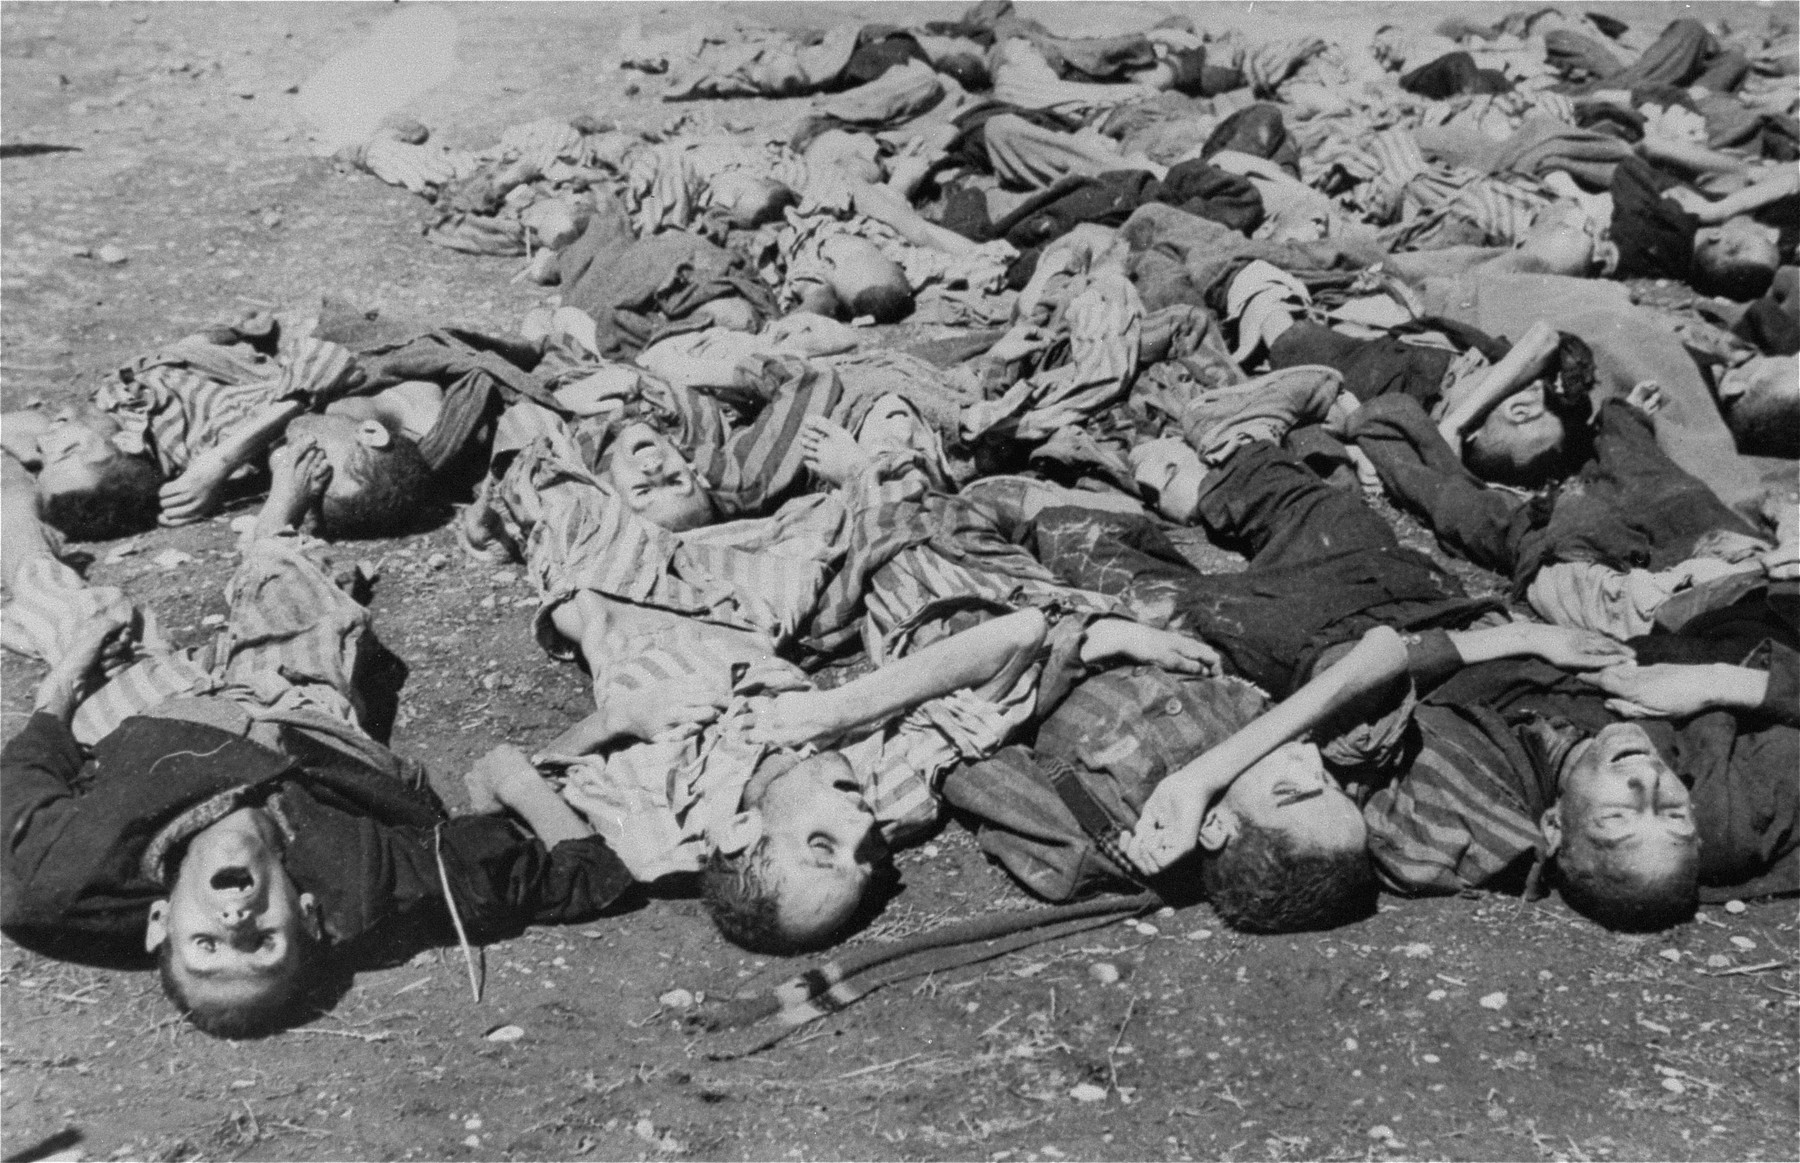 Corpses lie in a pile on the ground in the newly liberated Dachau concentration camp.